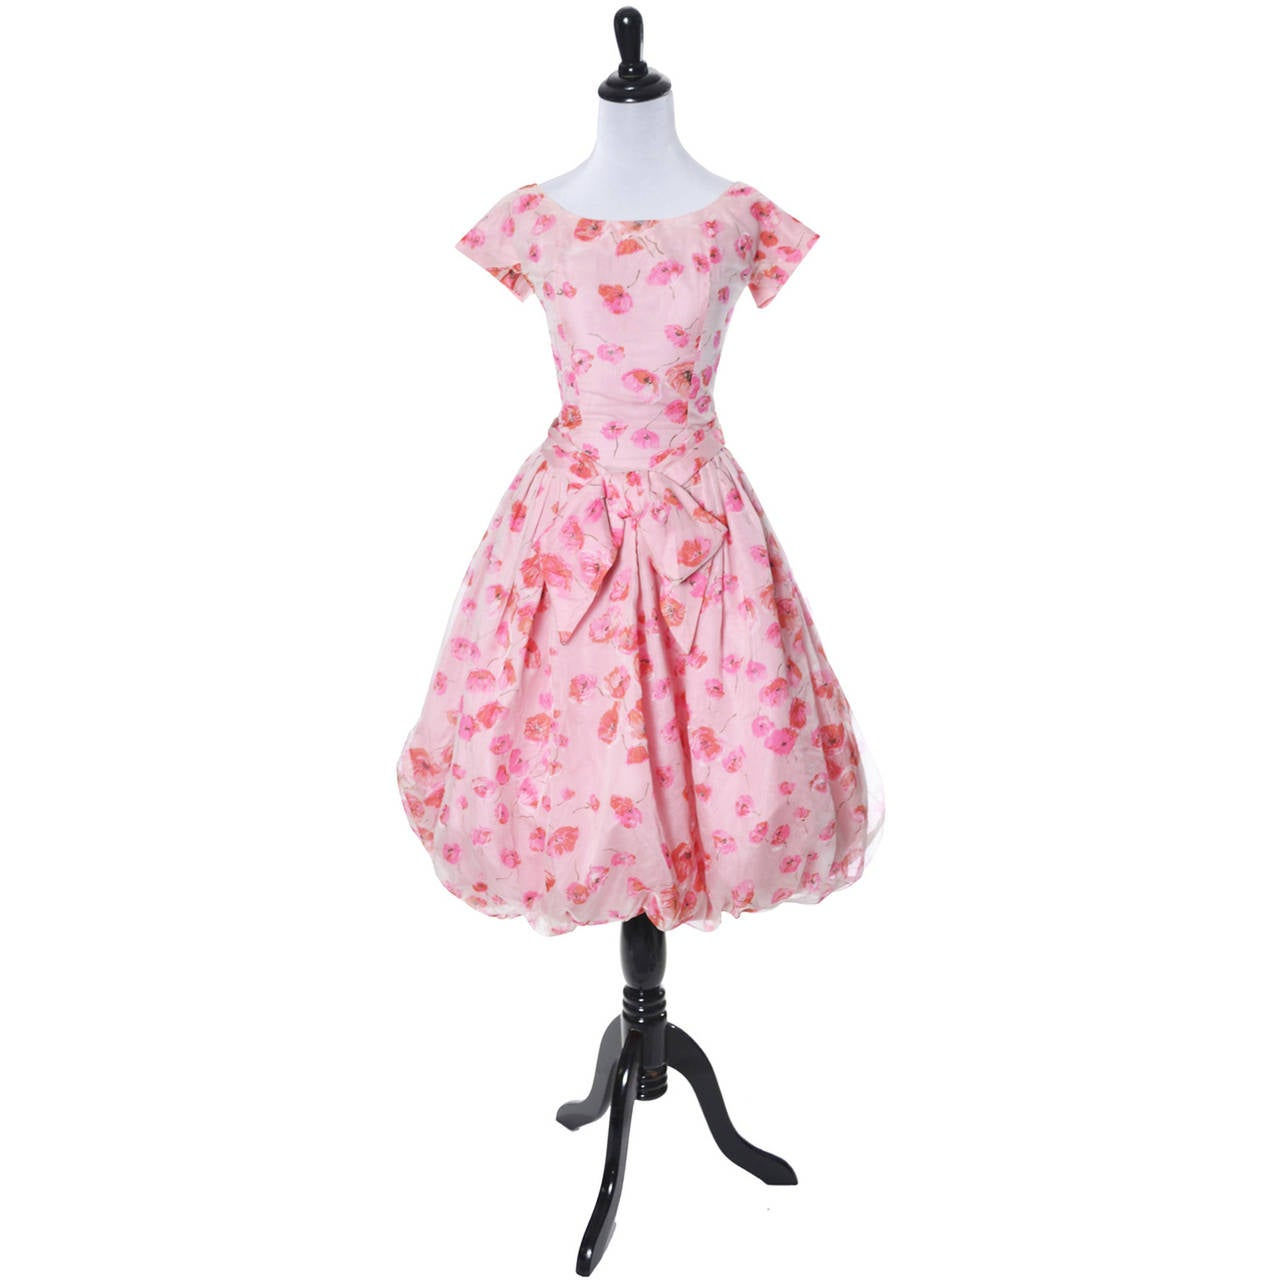 This pretty pink floral vintage dress is from the 1950's and was made by Suzy Perette, New York. The dress has a bubble skirt and a wonderful bow below the waist. The dress is in a sheer poppy floral organza over pink taffeta with a back zipper.